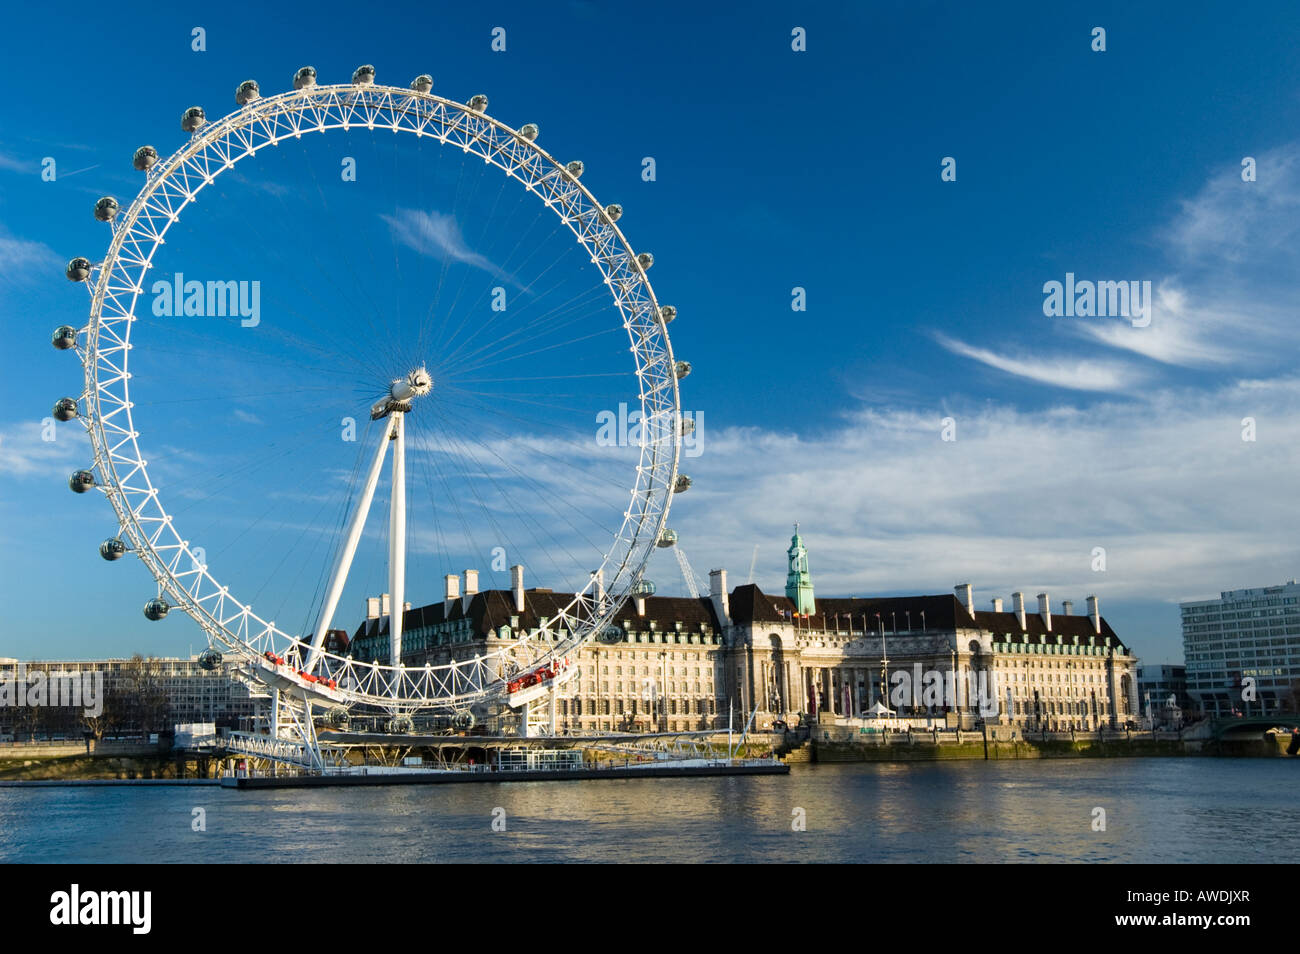 London Eye in the south bank of The River Thames - Stock Image